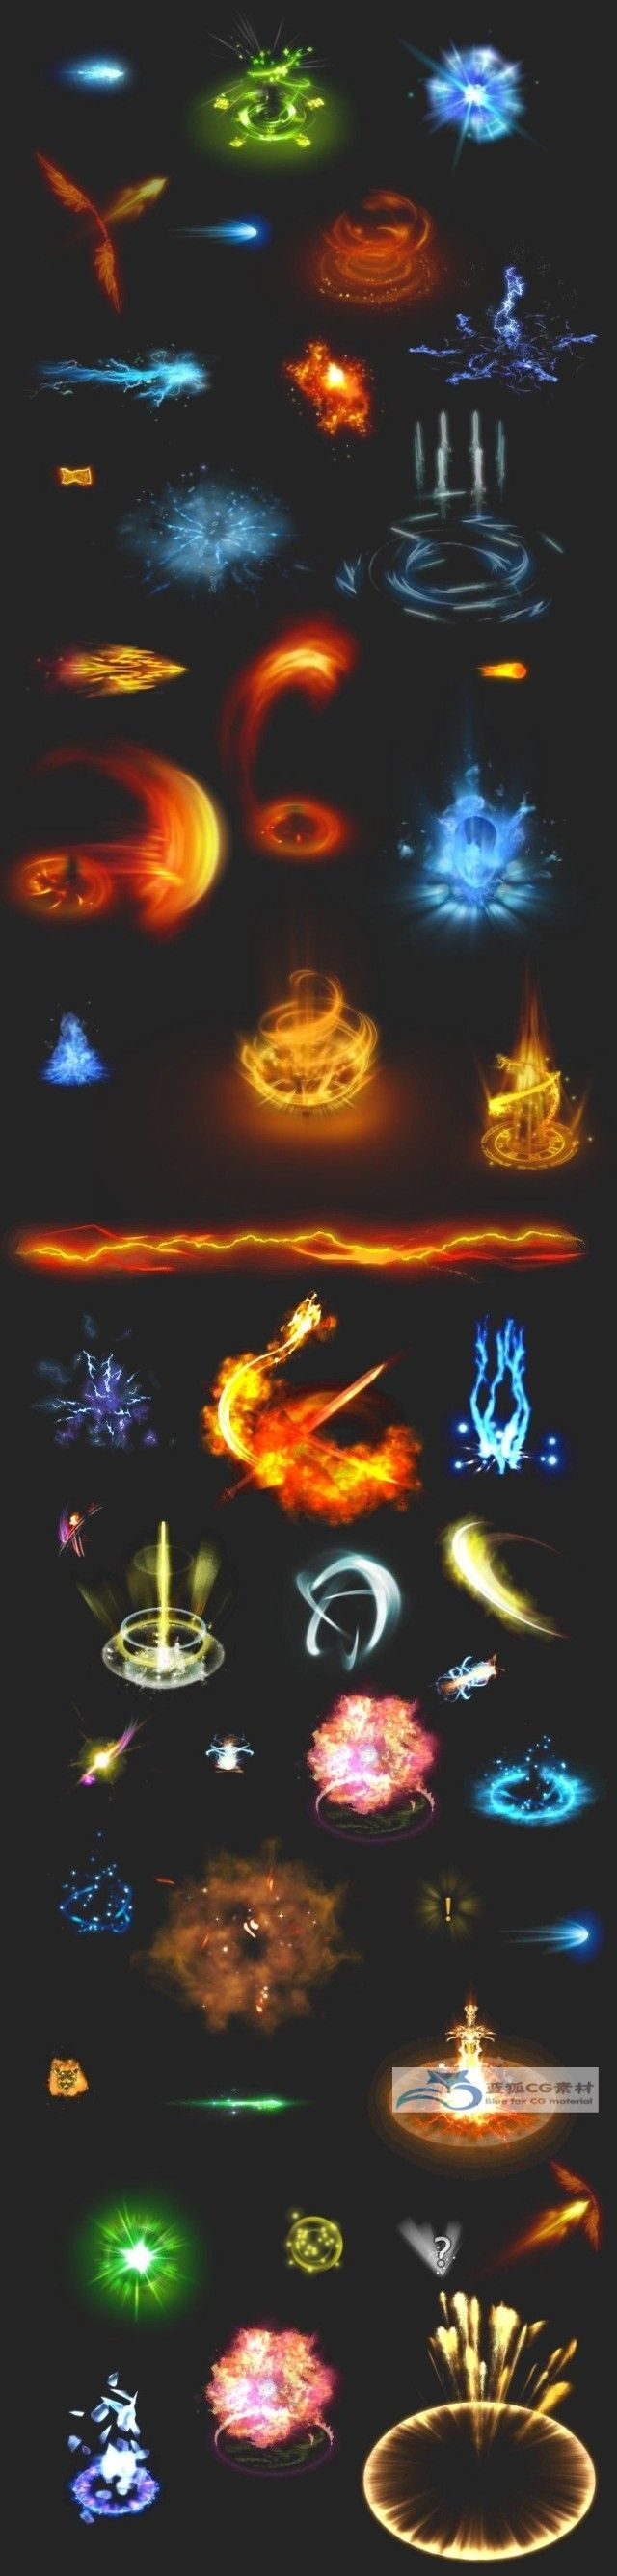 Game art material information material optical efficiency 68 special sets of skills ...